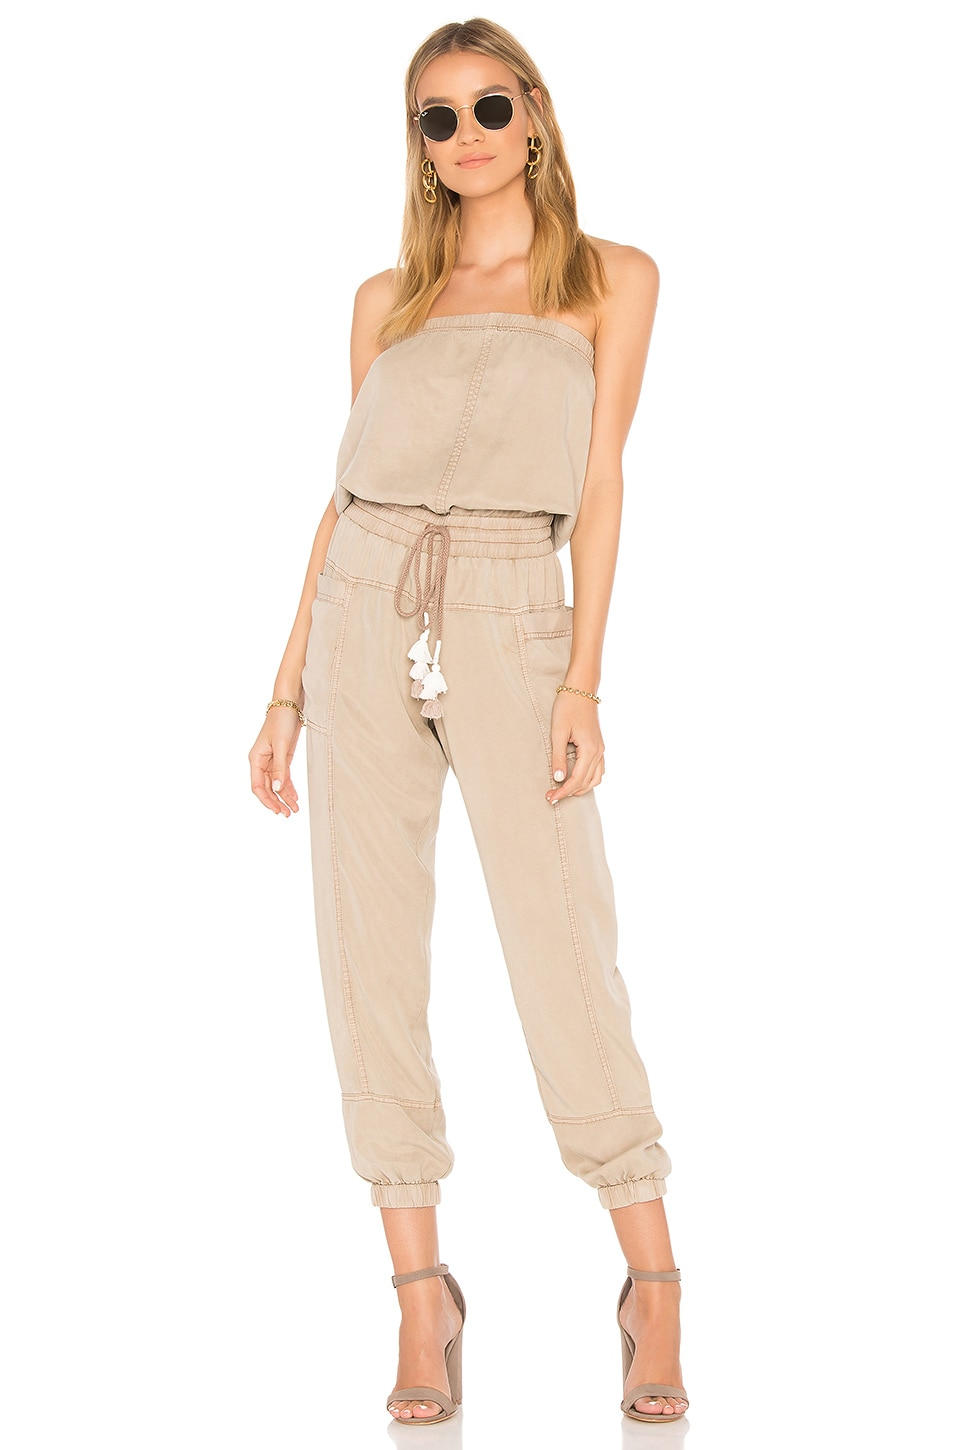 YFB CLOTHING Luke Jumpsuit in Natural